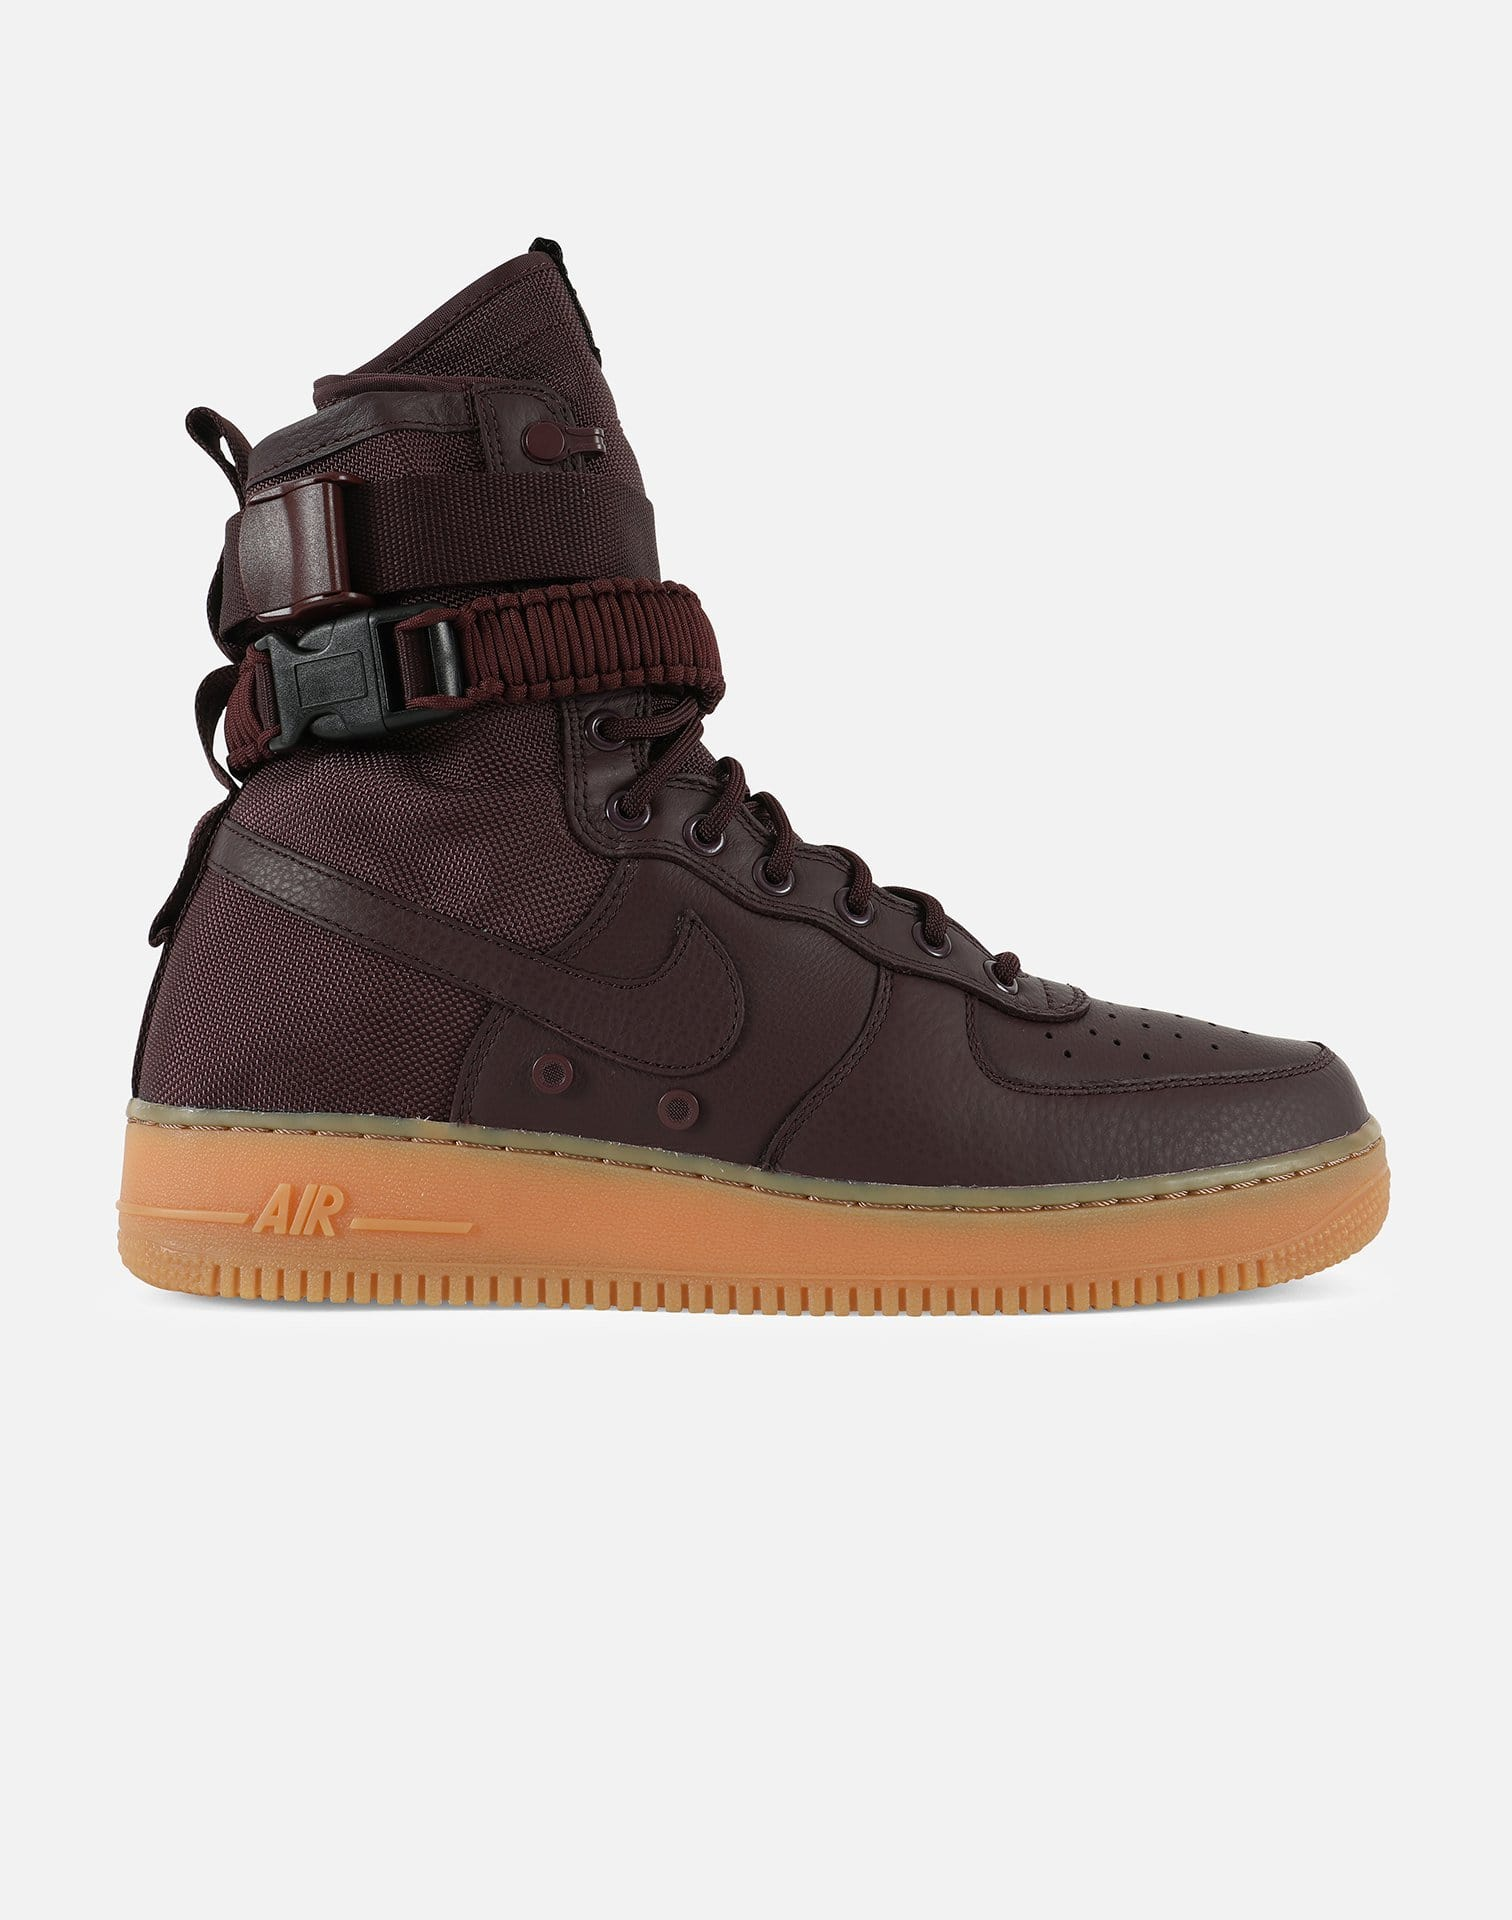 Nike SF Air Force 1 Hi 1.0